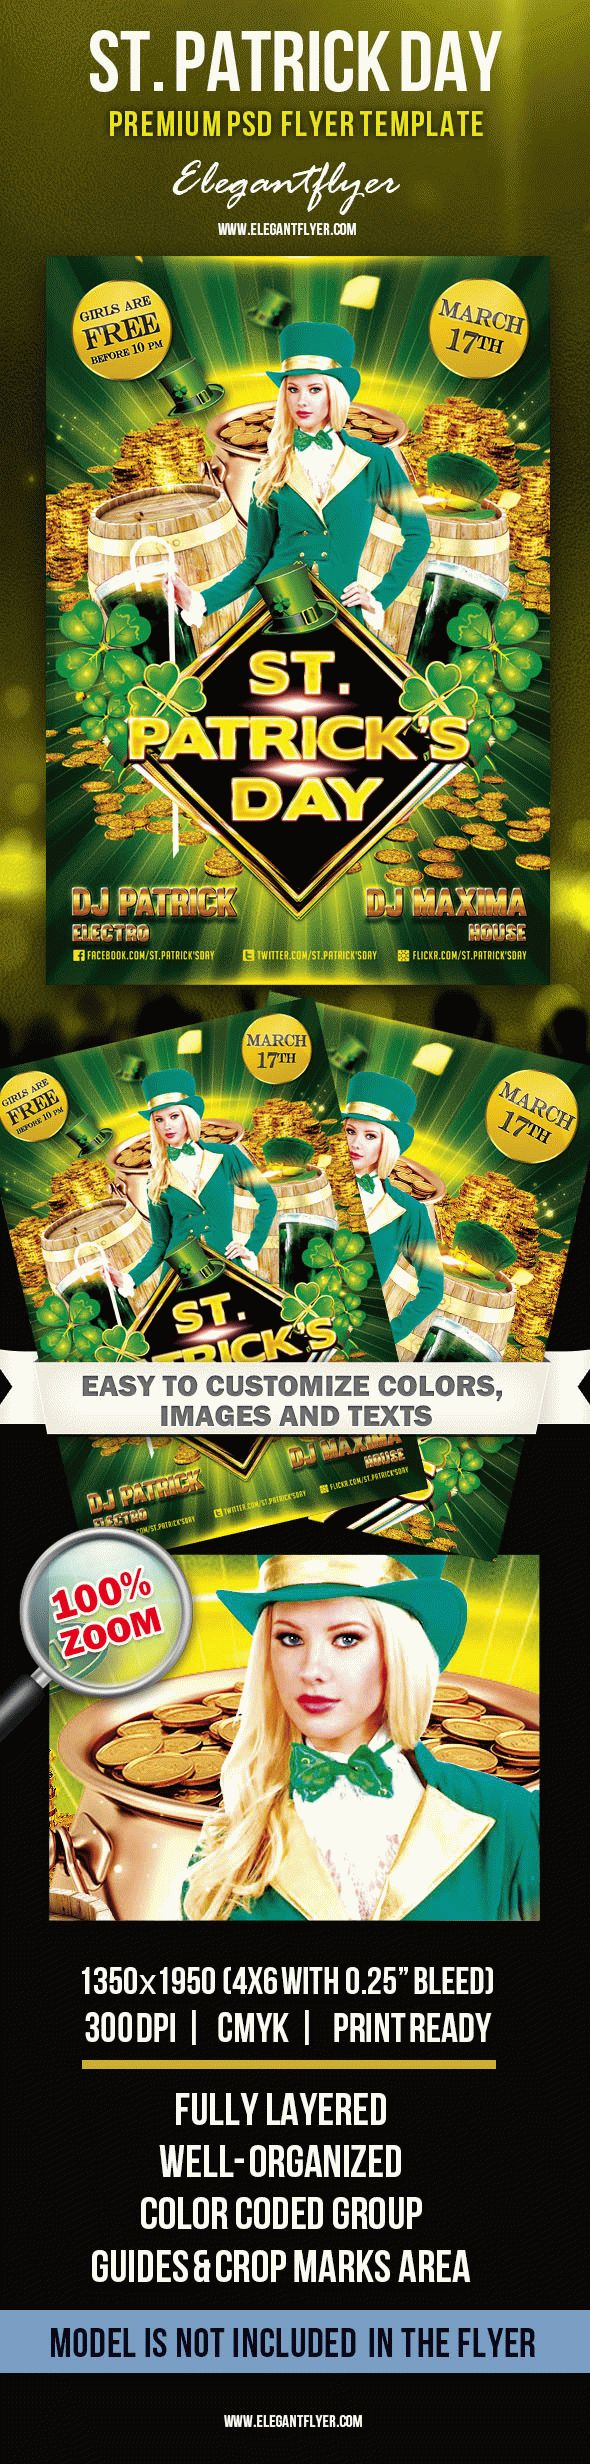 St. Patrick's Day Vol.2 – Premium Club flyer PSD Template